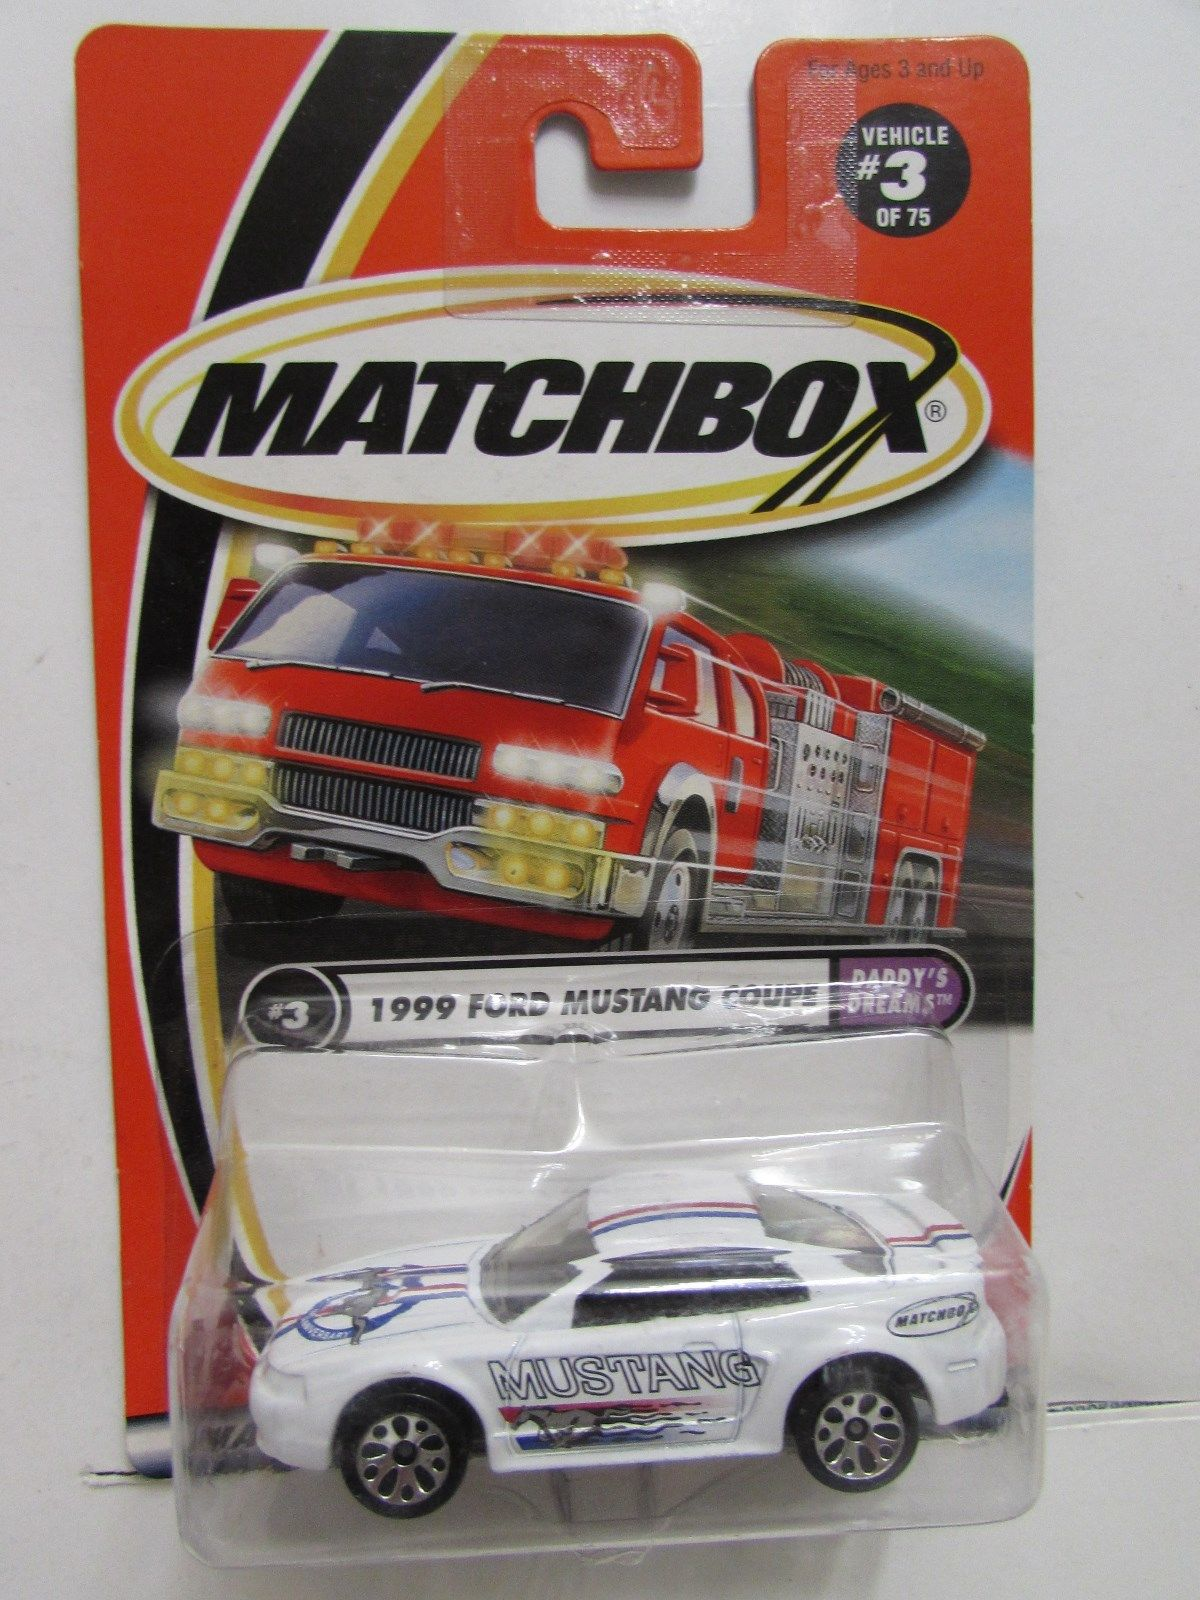 MATCHBOX 2000 #3/75 1999 FORD MUSTANG COUPE E+